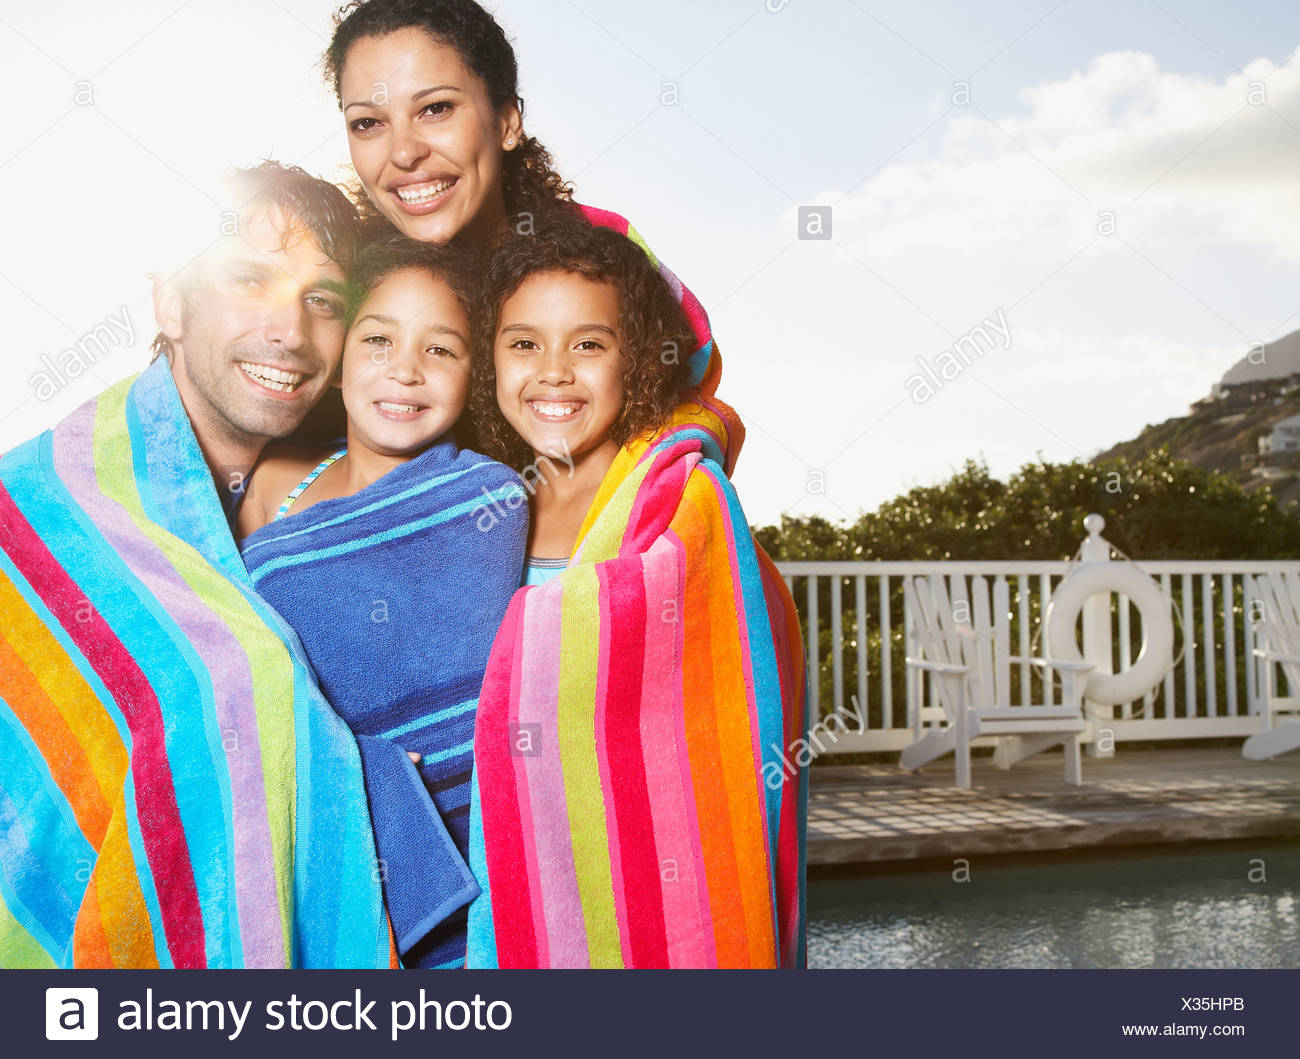 Man and woman with girls in beach towels by pool outdoors - Stock Image